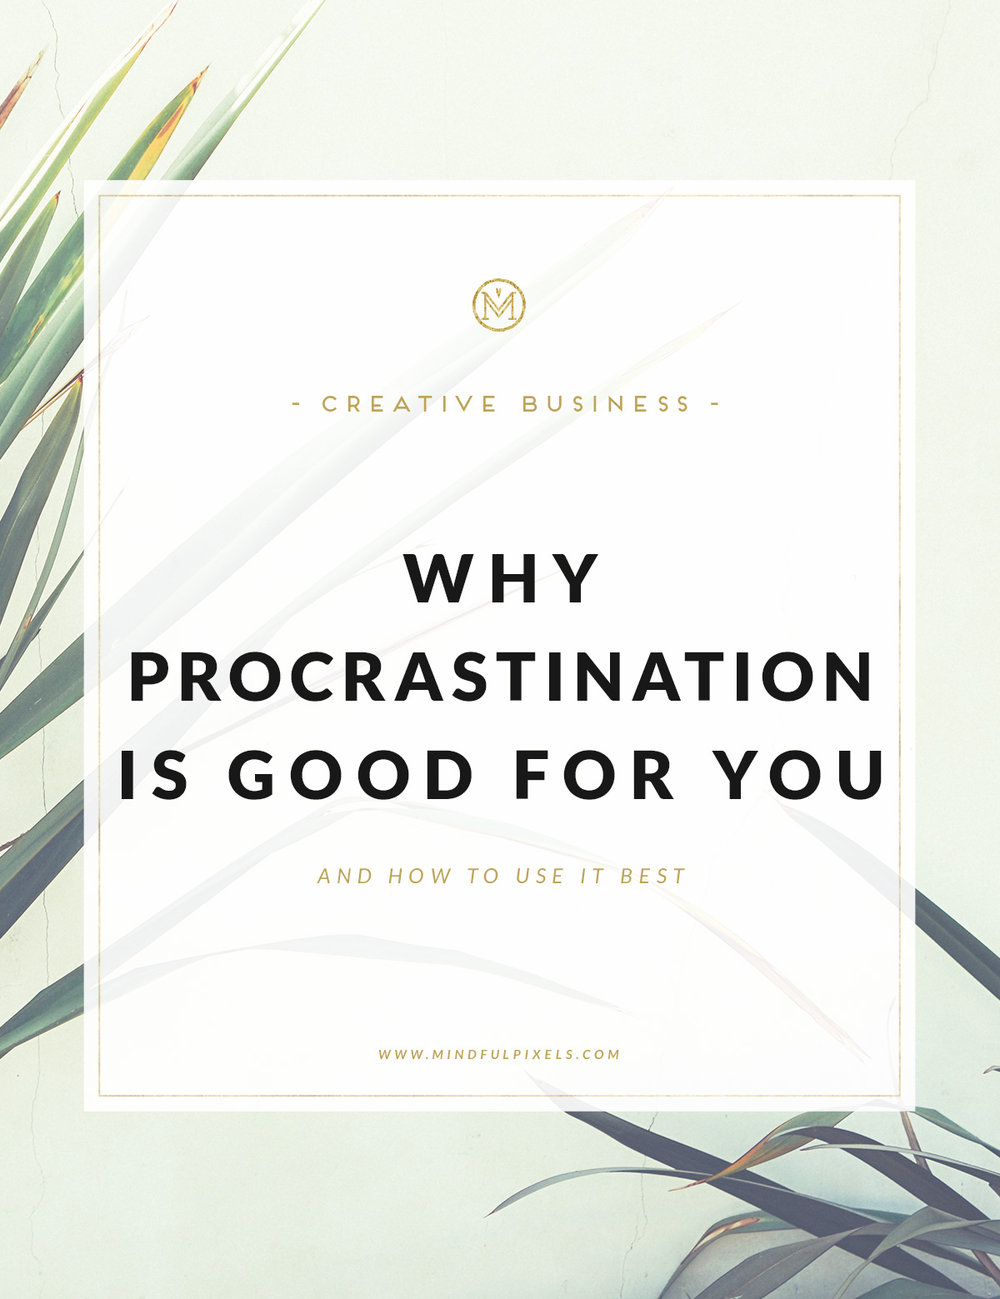 Why is Procrastination Good for You